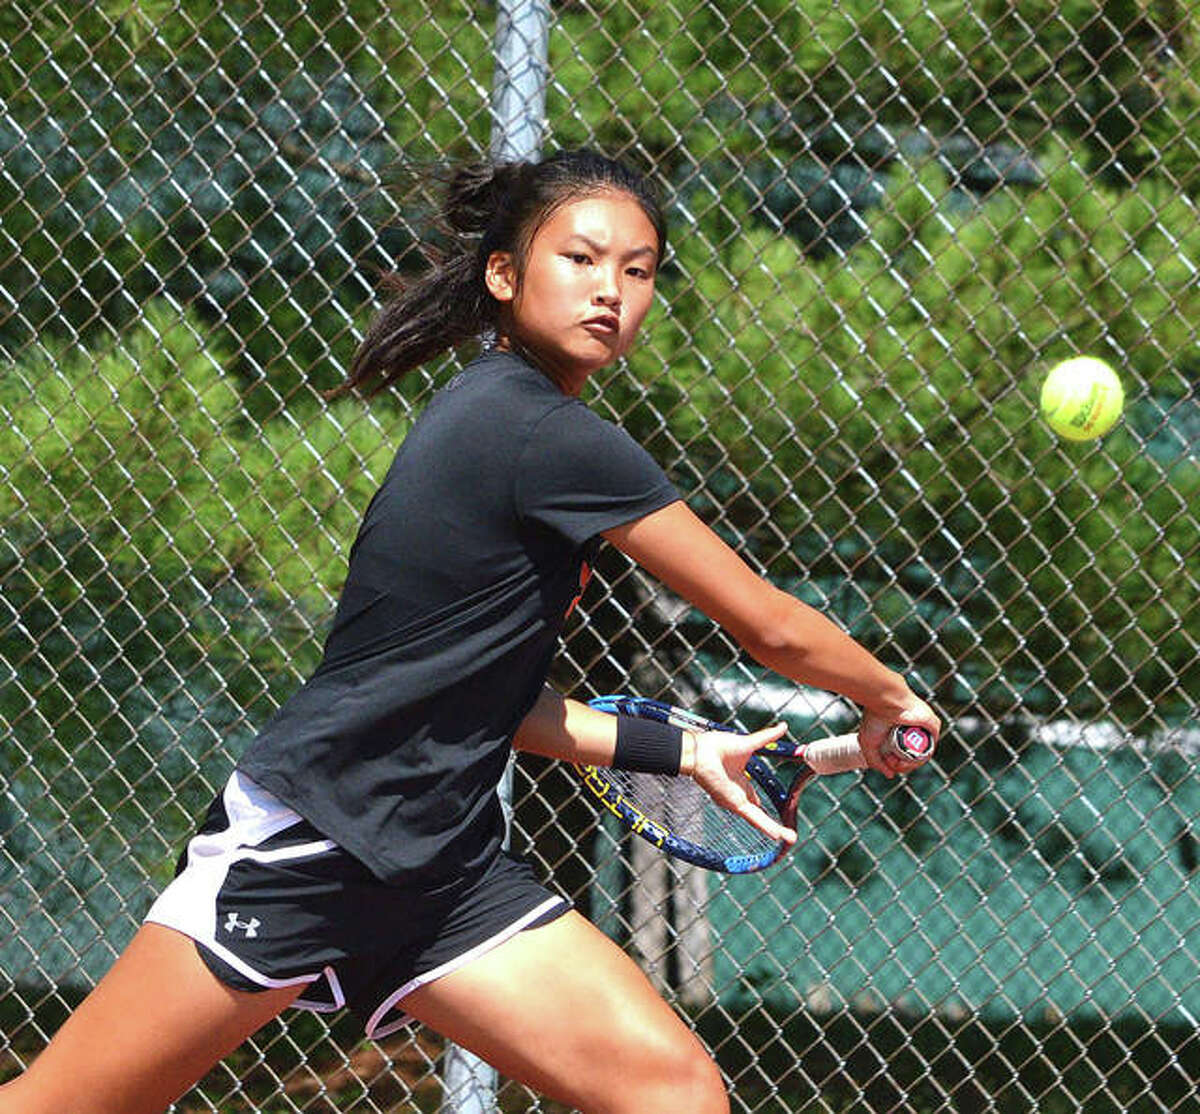 Edwardsville freshman Chloe Koons reaches for a shot on Saturday during her No. 1 singles match against New Trier 2 in the third-place match of the Heather Bradshaw Memorial Invitational.